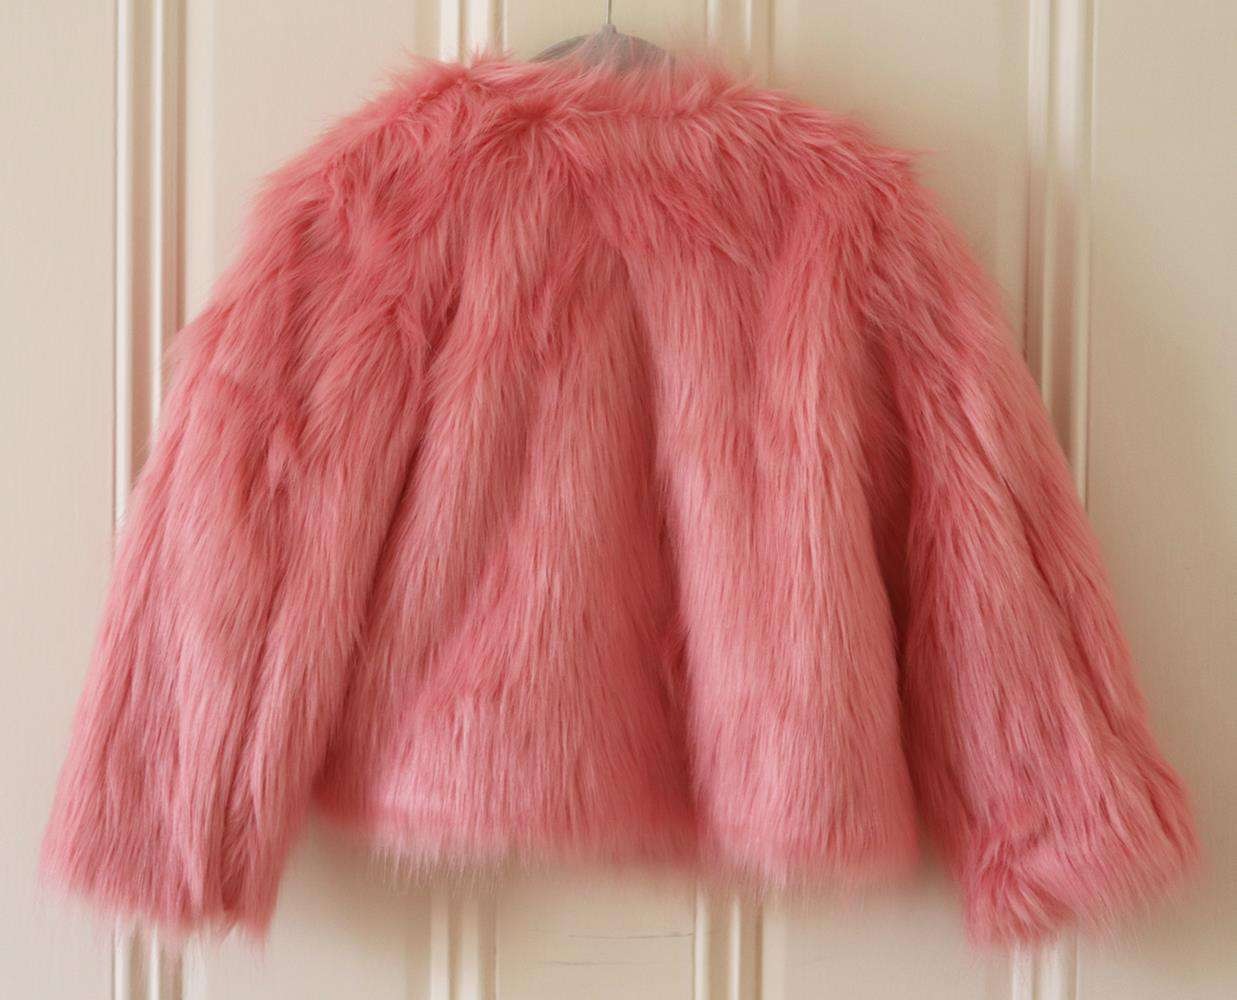 SORCI AND FOFA KIDS GIRLS FAUX FUR JACKET 5 YEARS